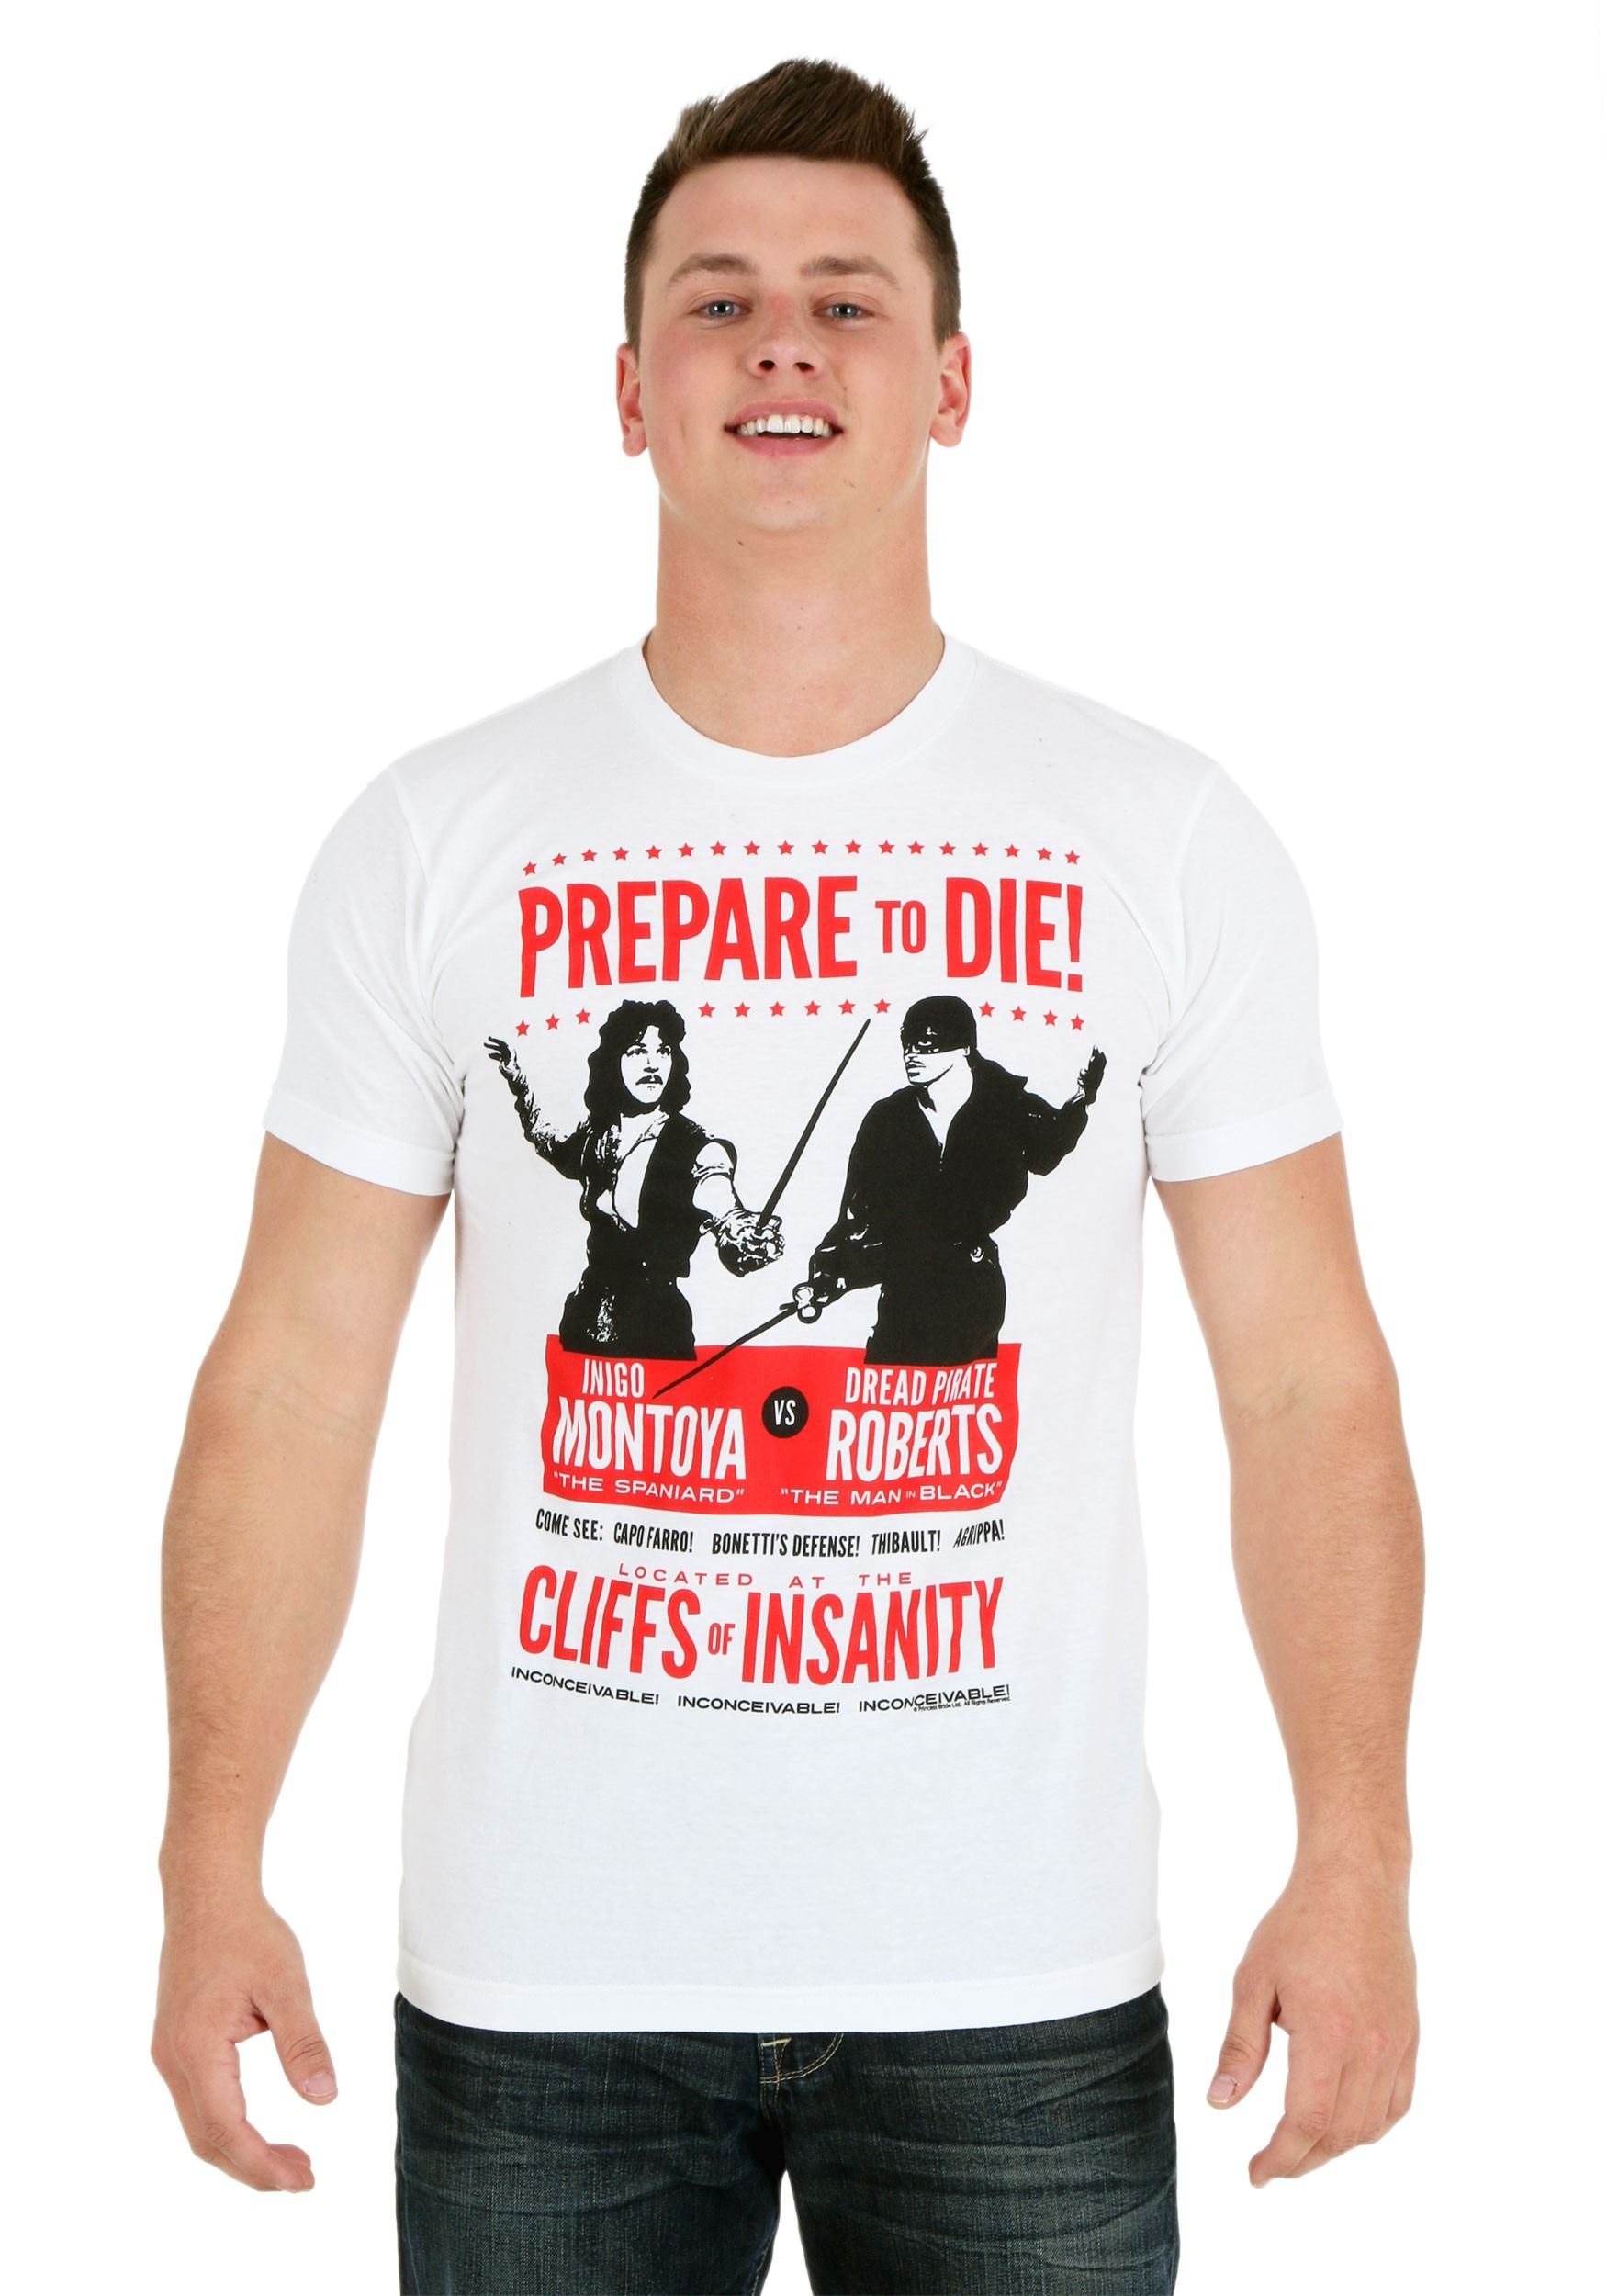 3dedd0dc Princess Bride Prepare To Die Poster Men's T-Shirt Update Ma